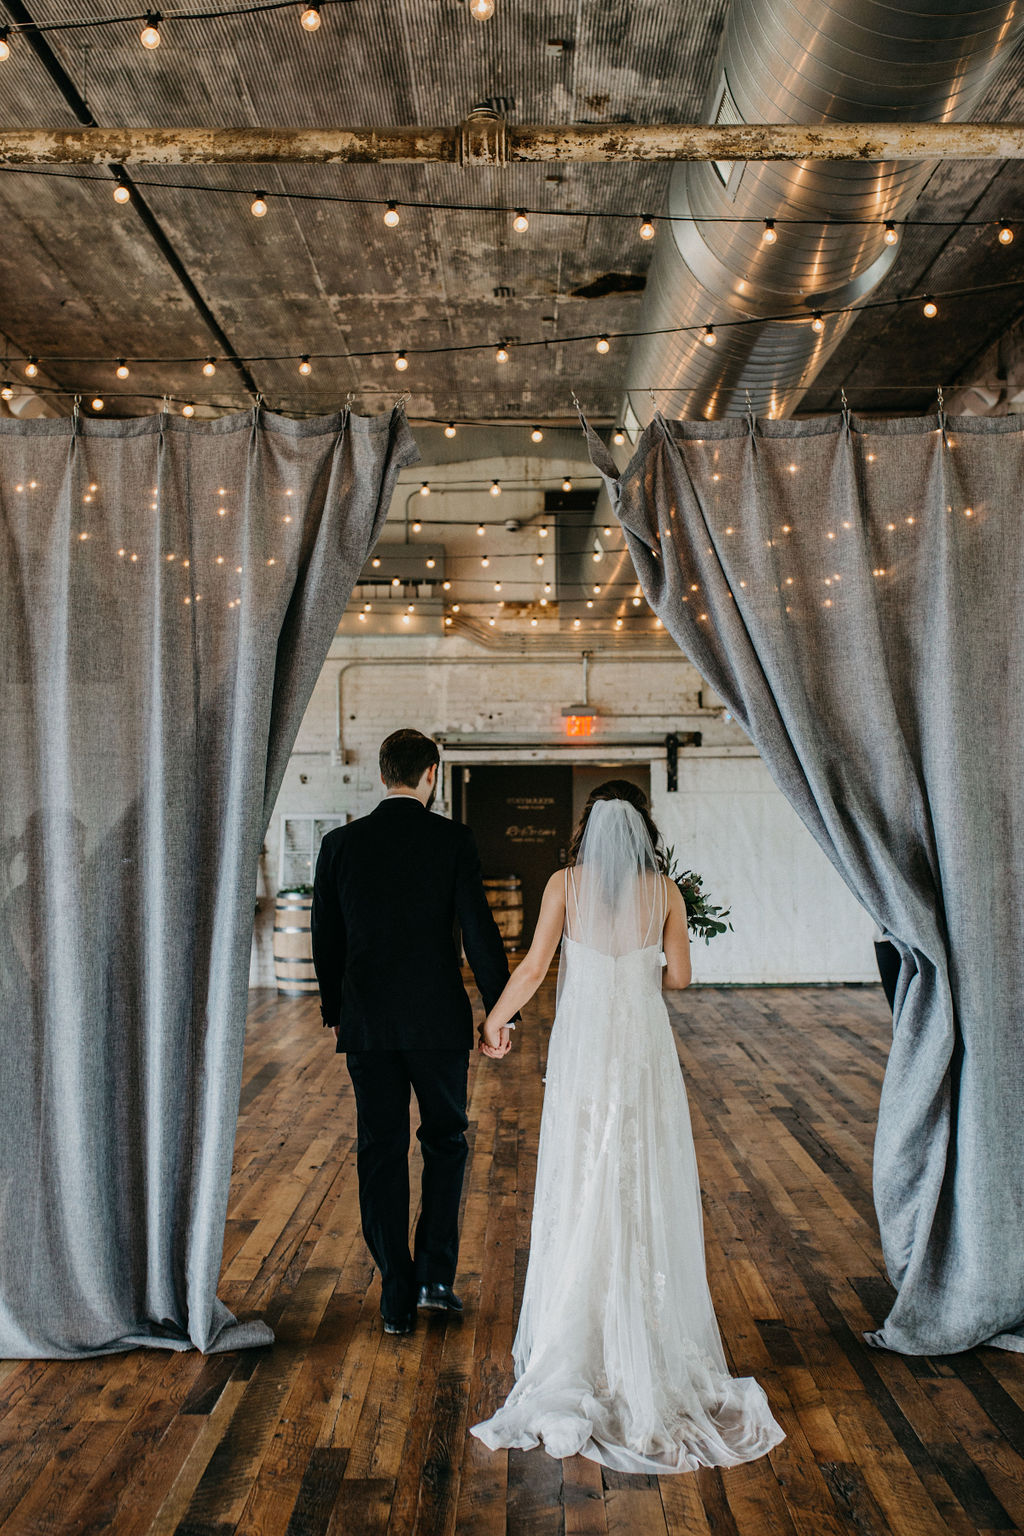 A couple recessing from their wedding ceremony